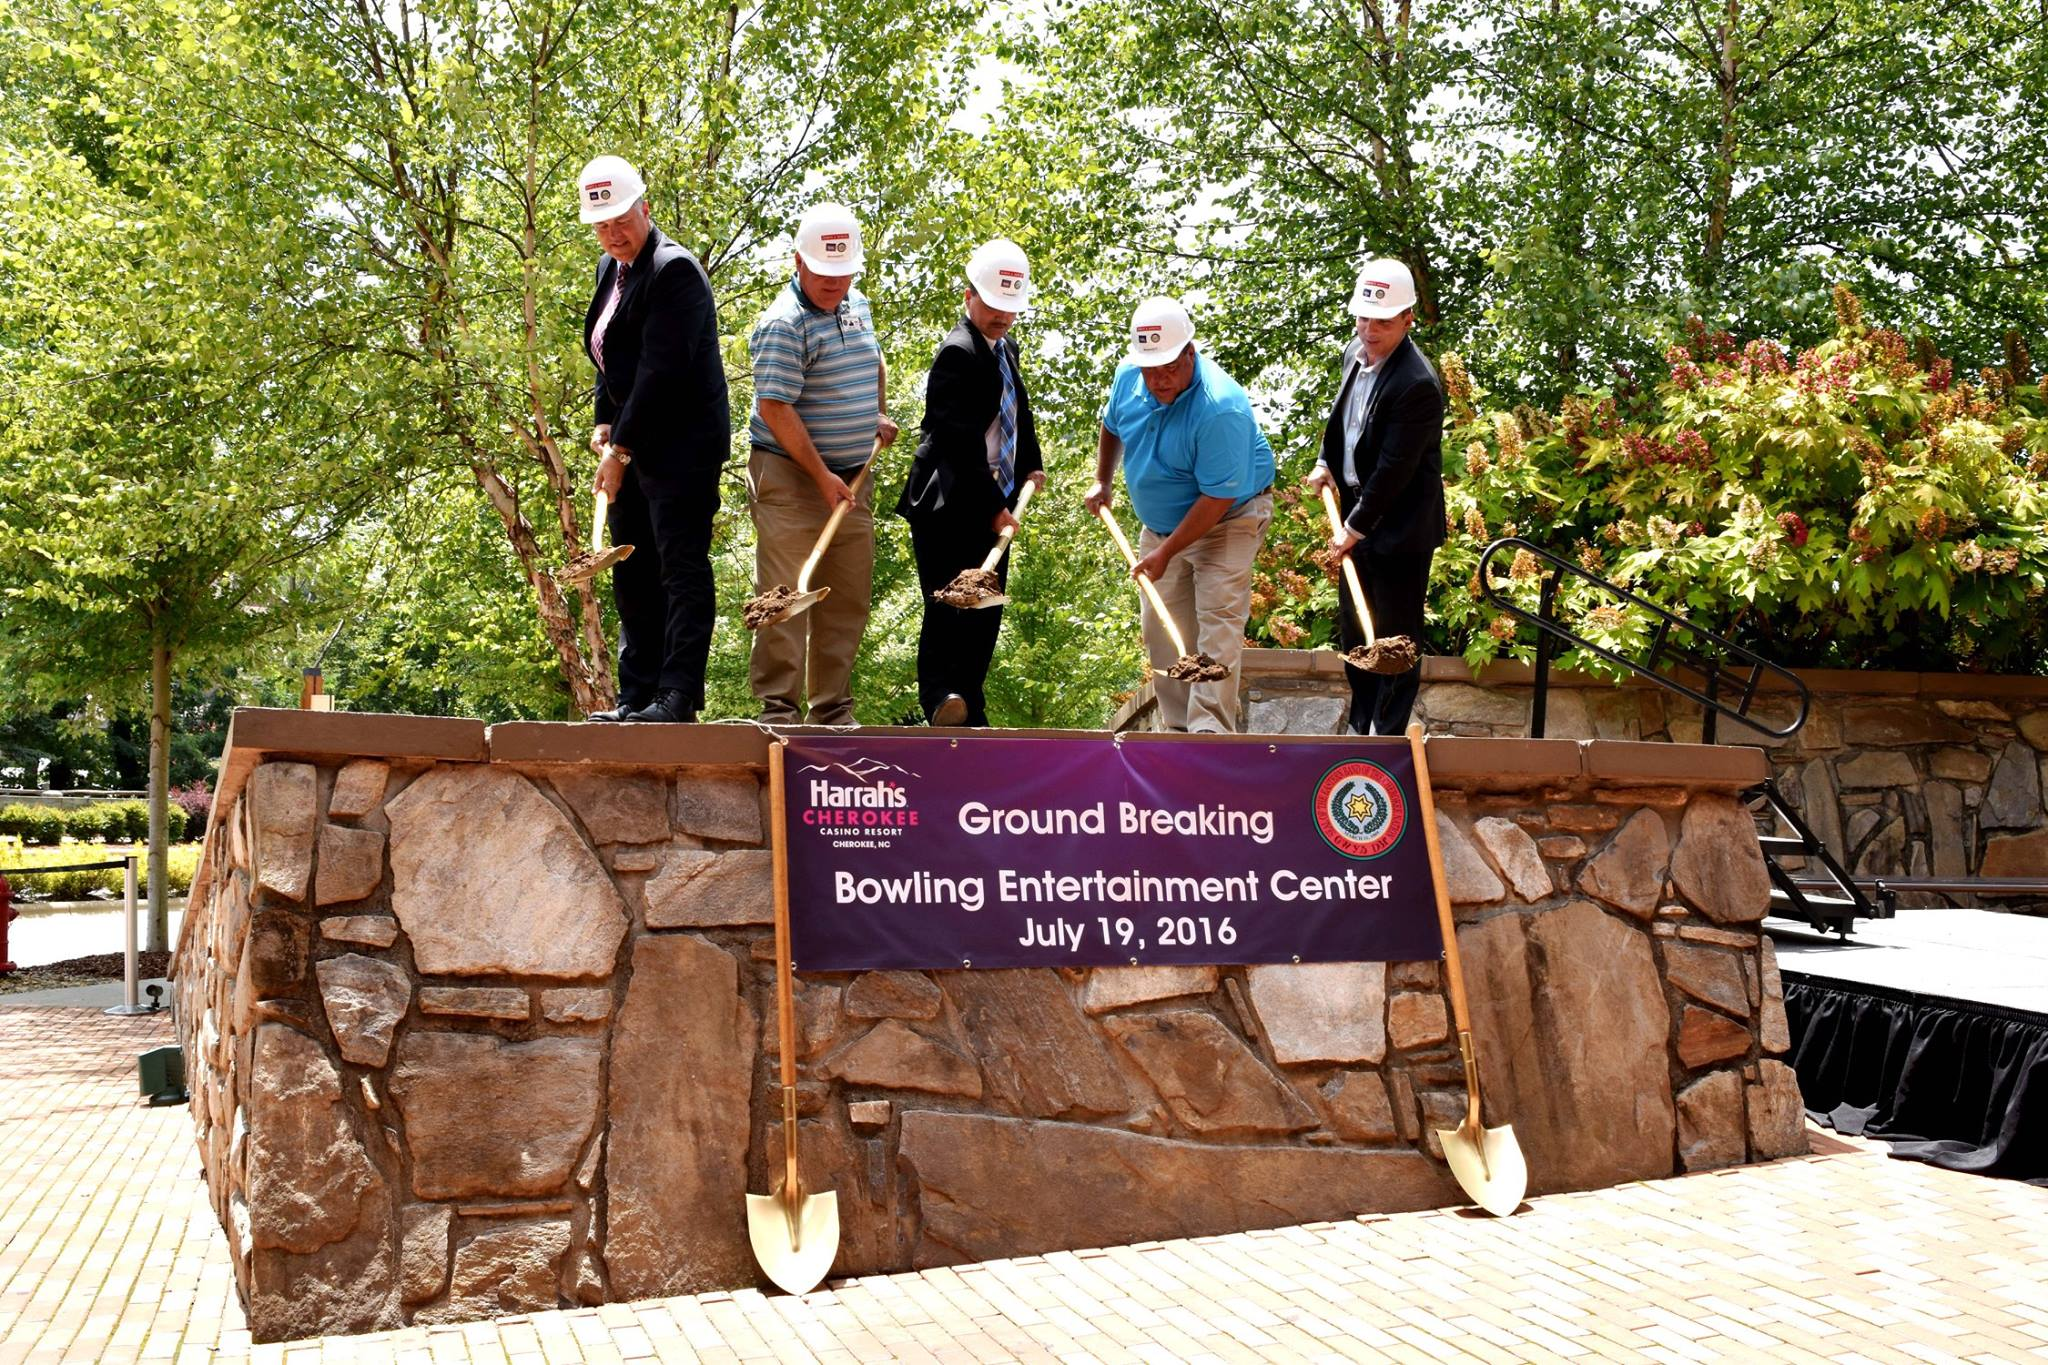 Eastern Cherokees start work on $13M bowling center at casino